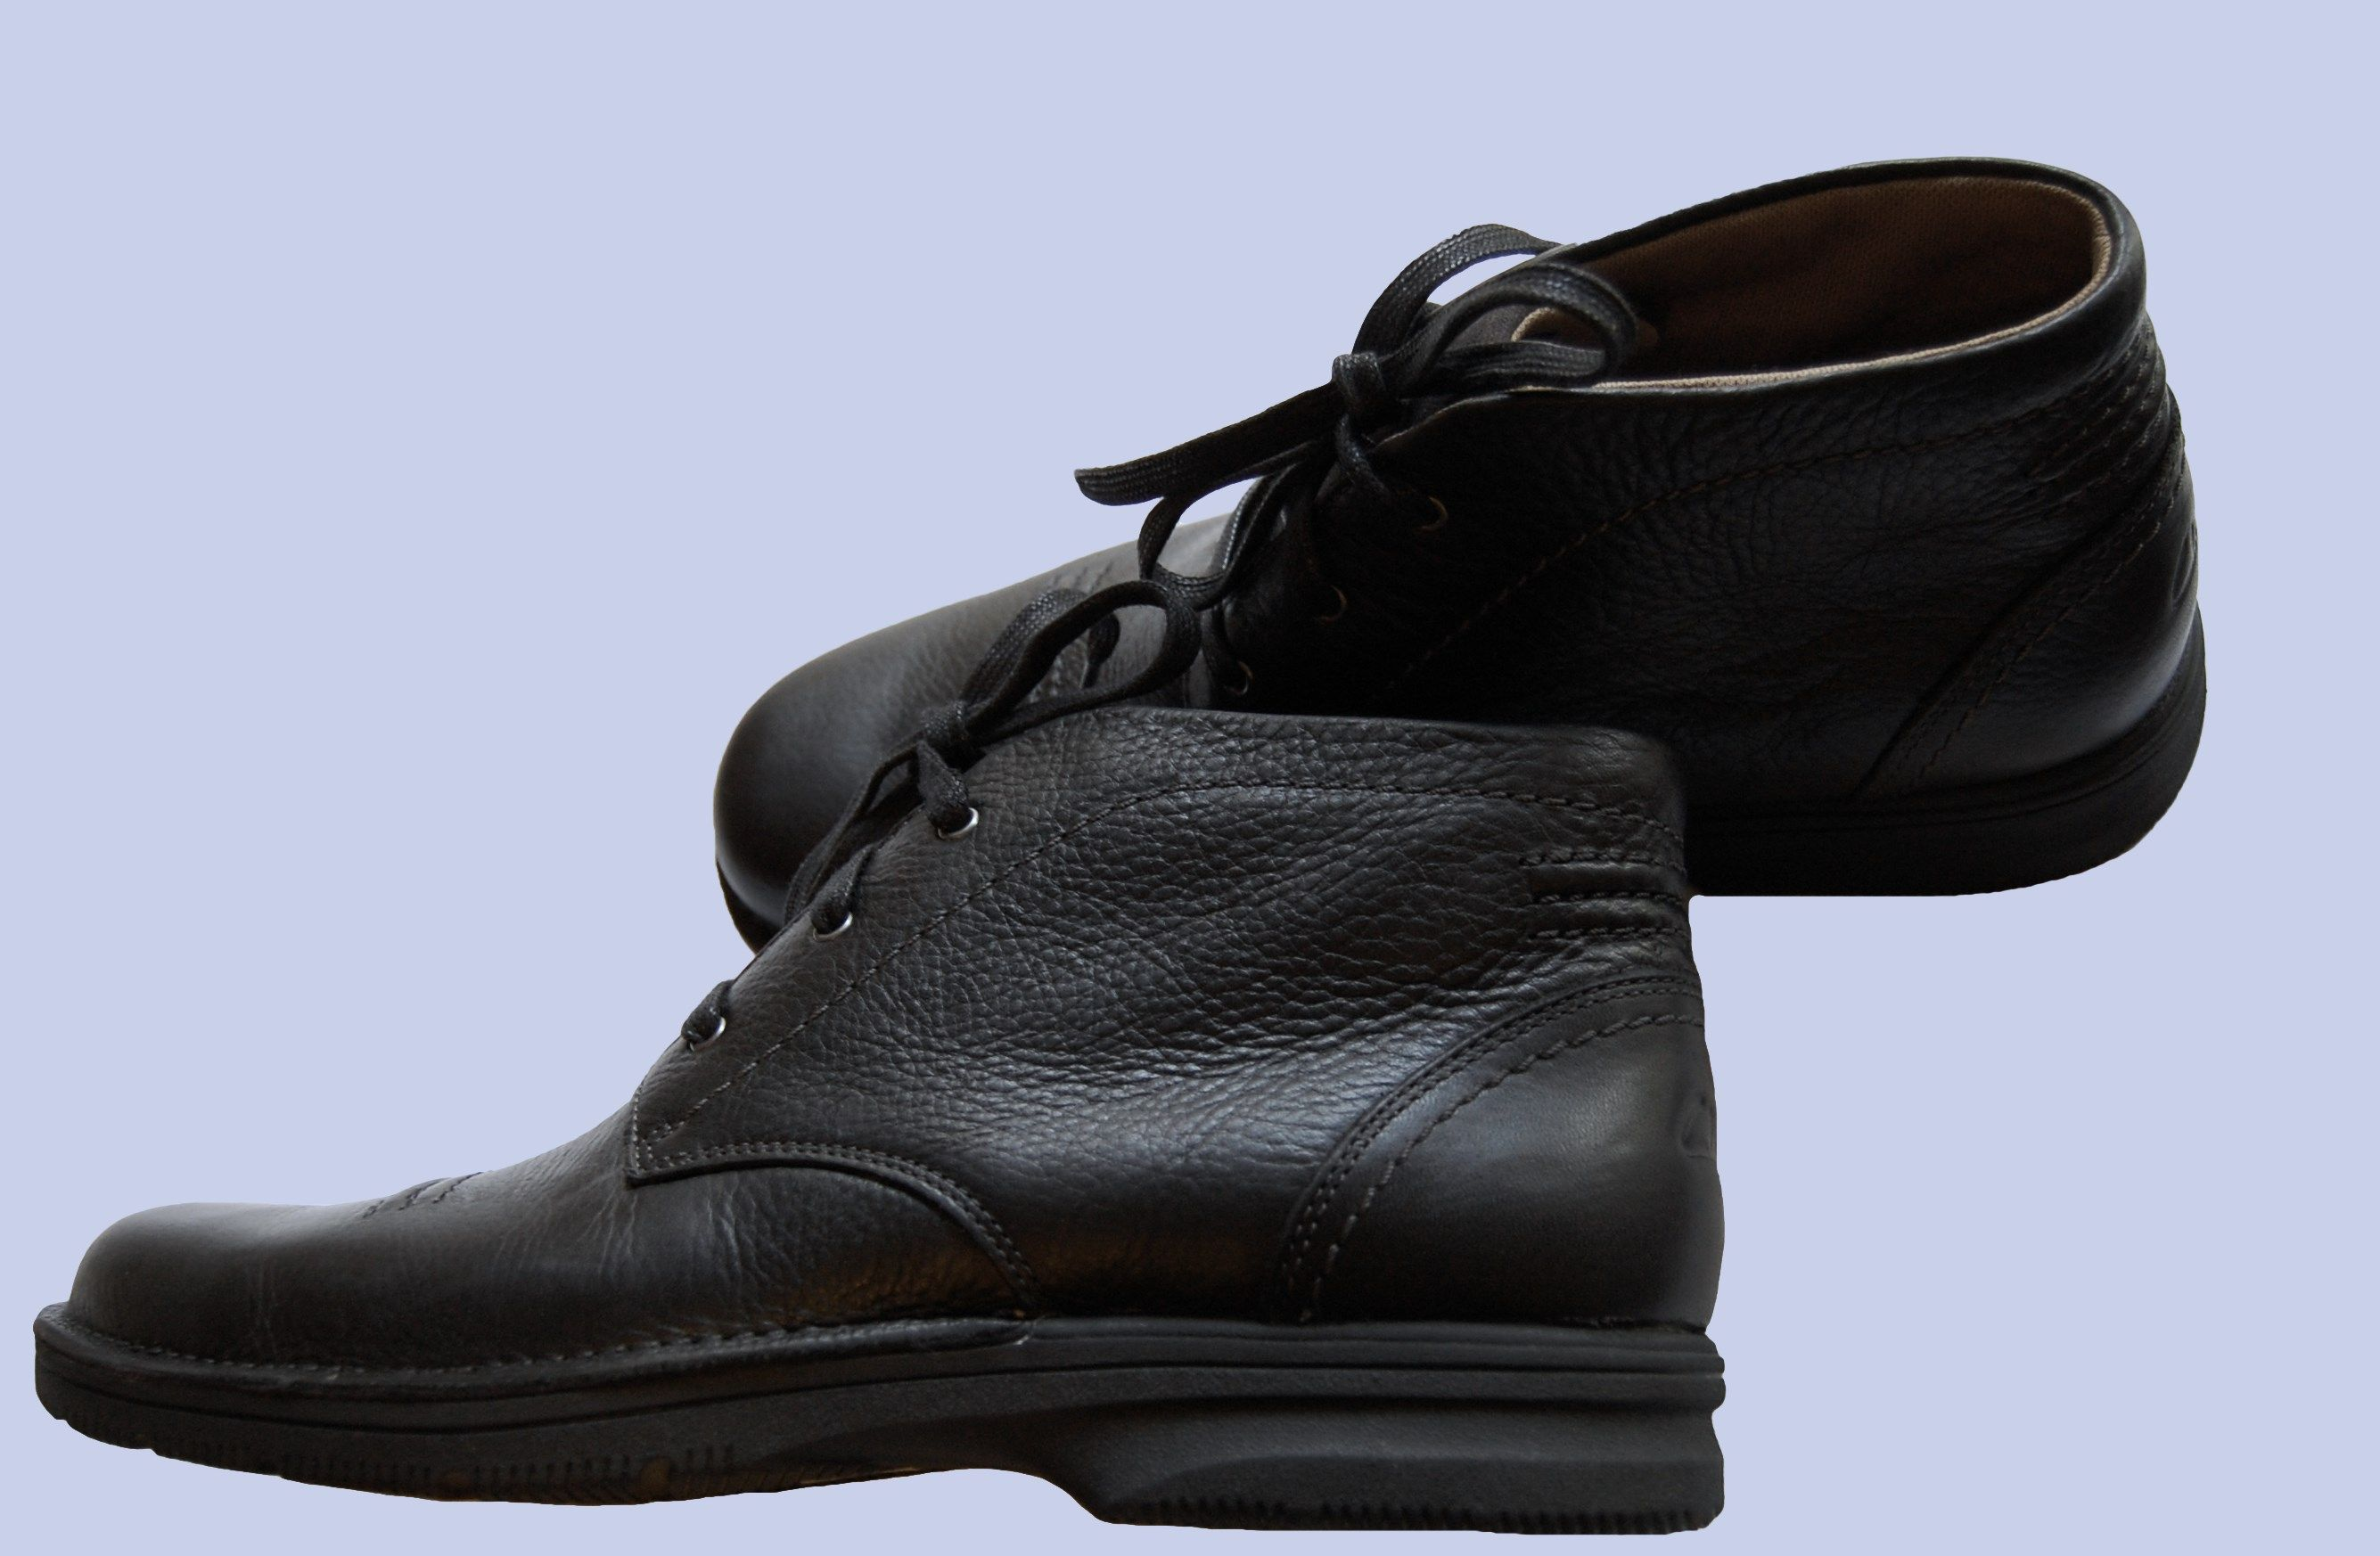 Clarks Senner Drive Mens Black Fashion Leather Boots